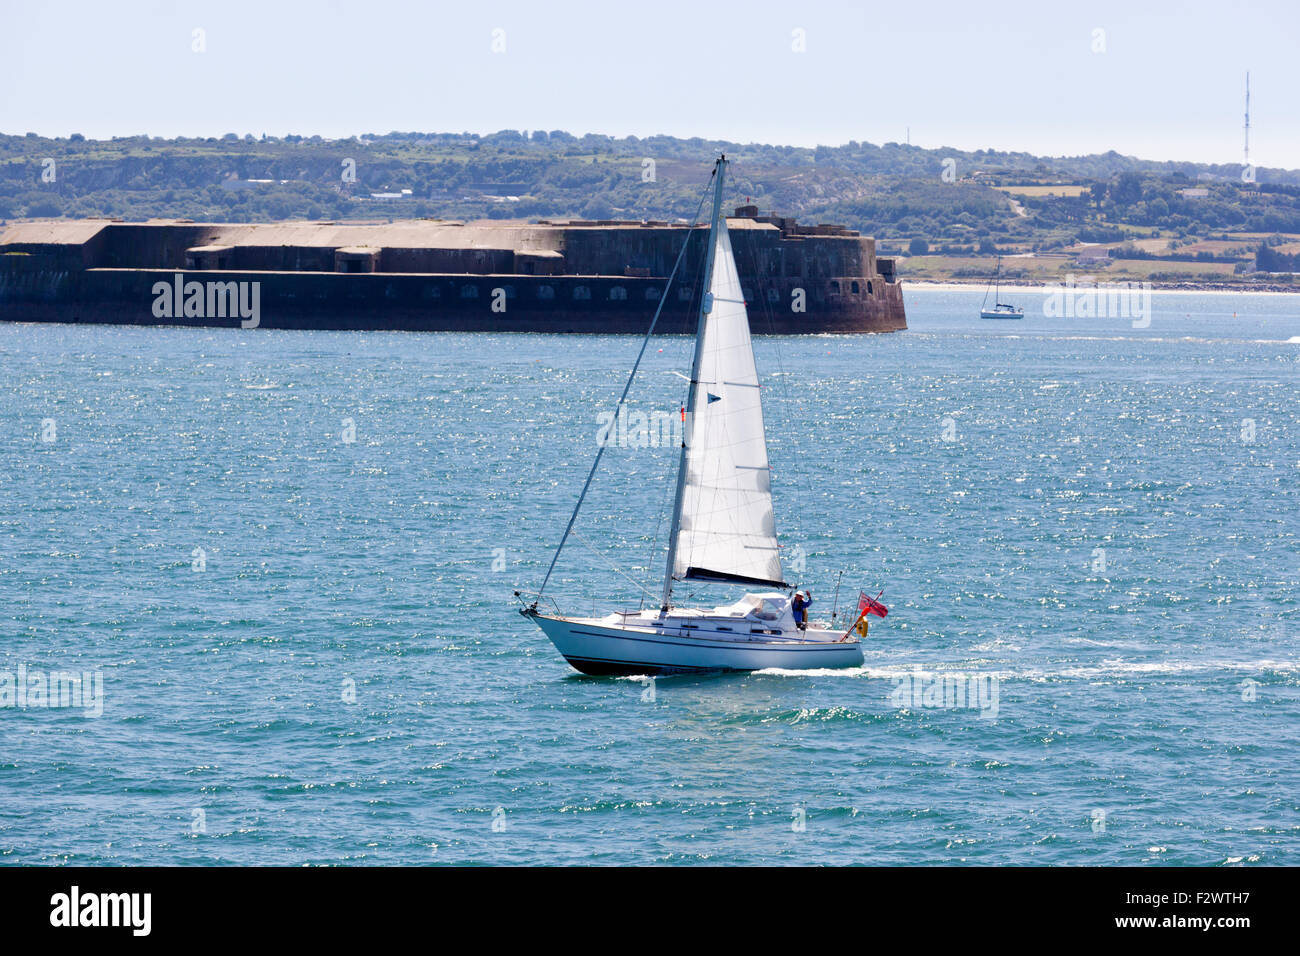 A sailing yacht entering the port at Cherbourg, Normandy, France Stock Photo